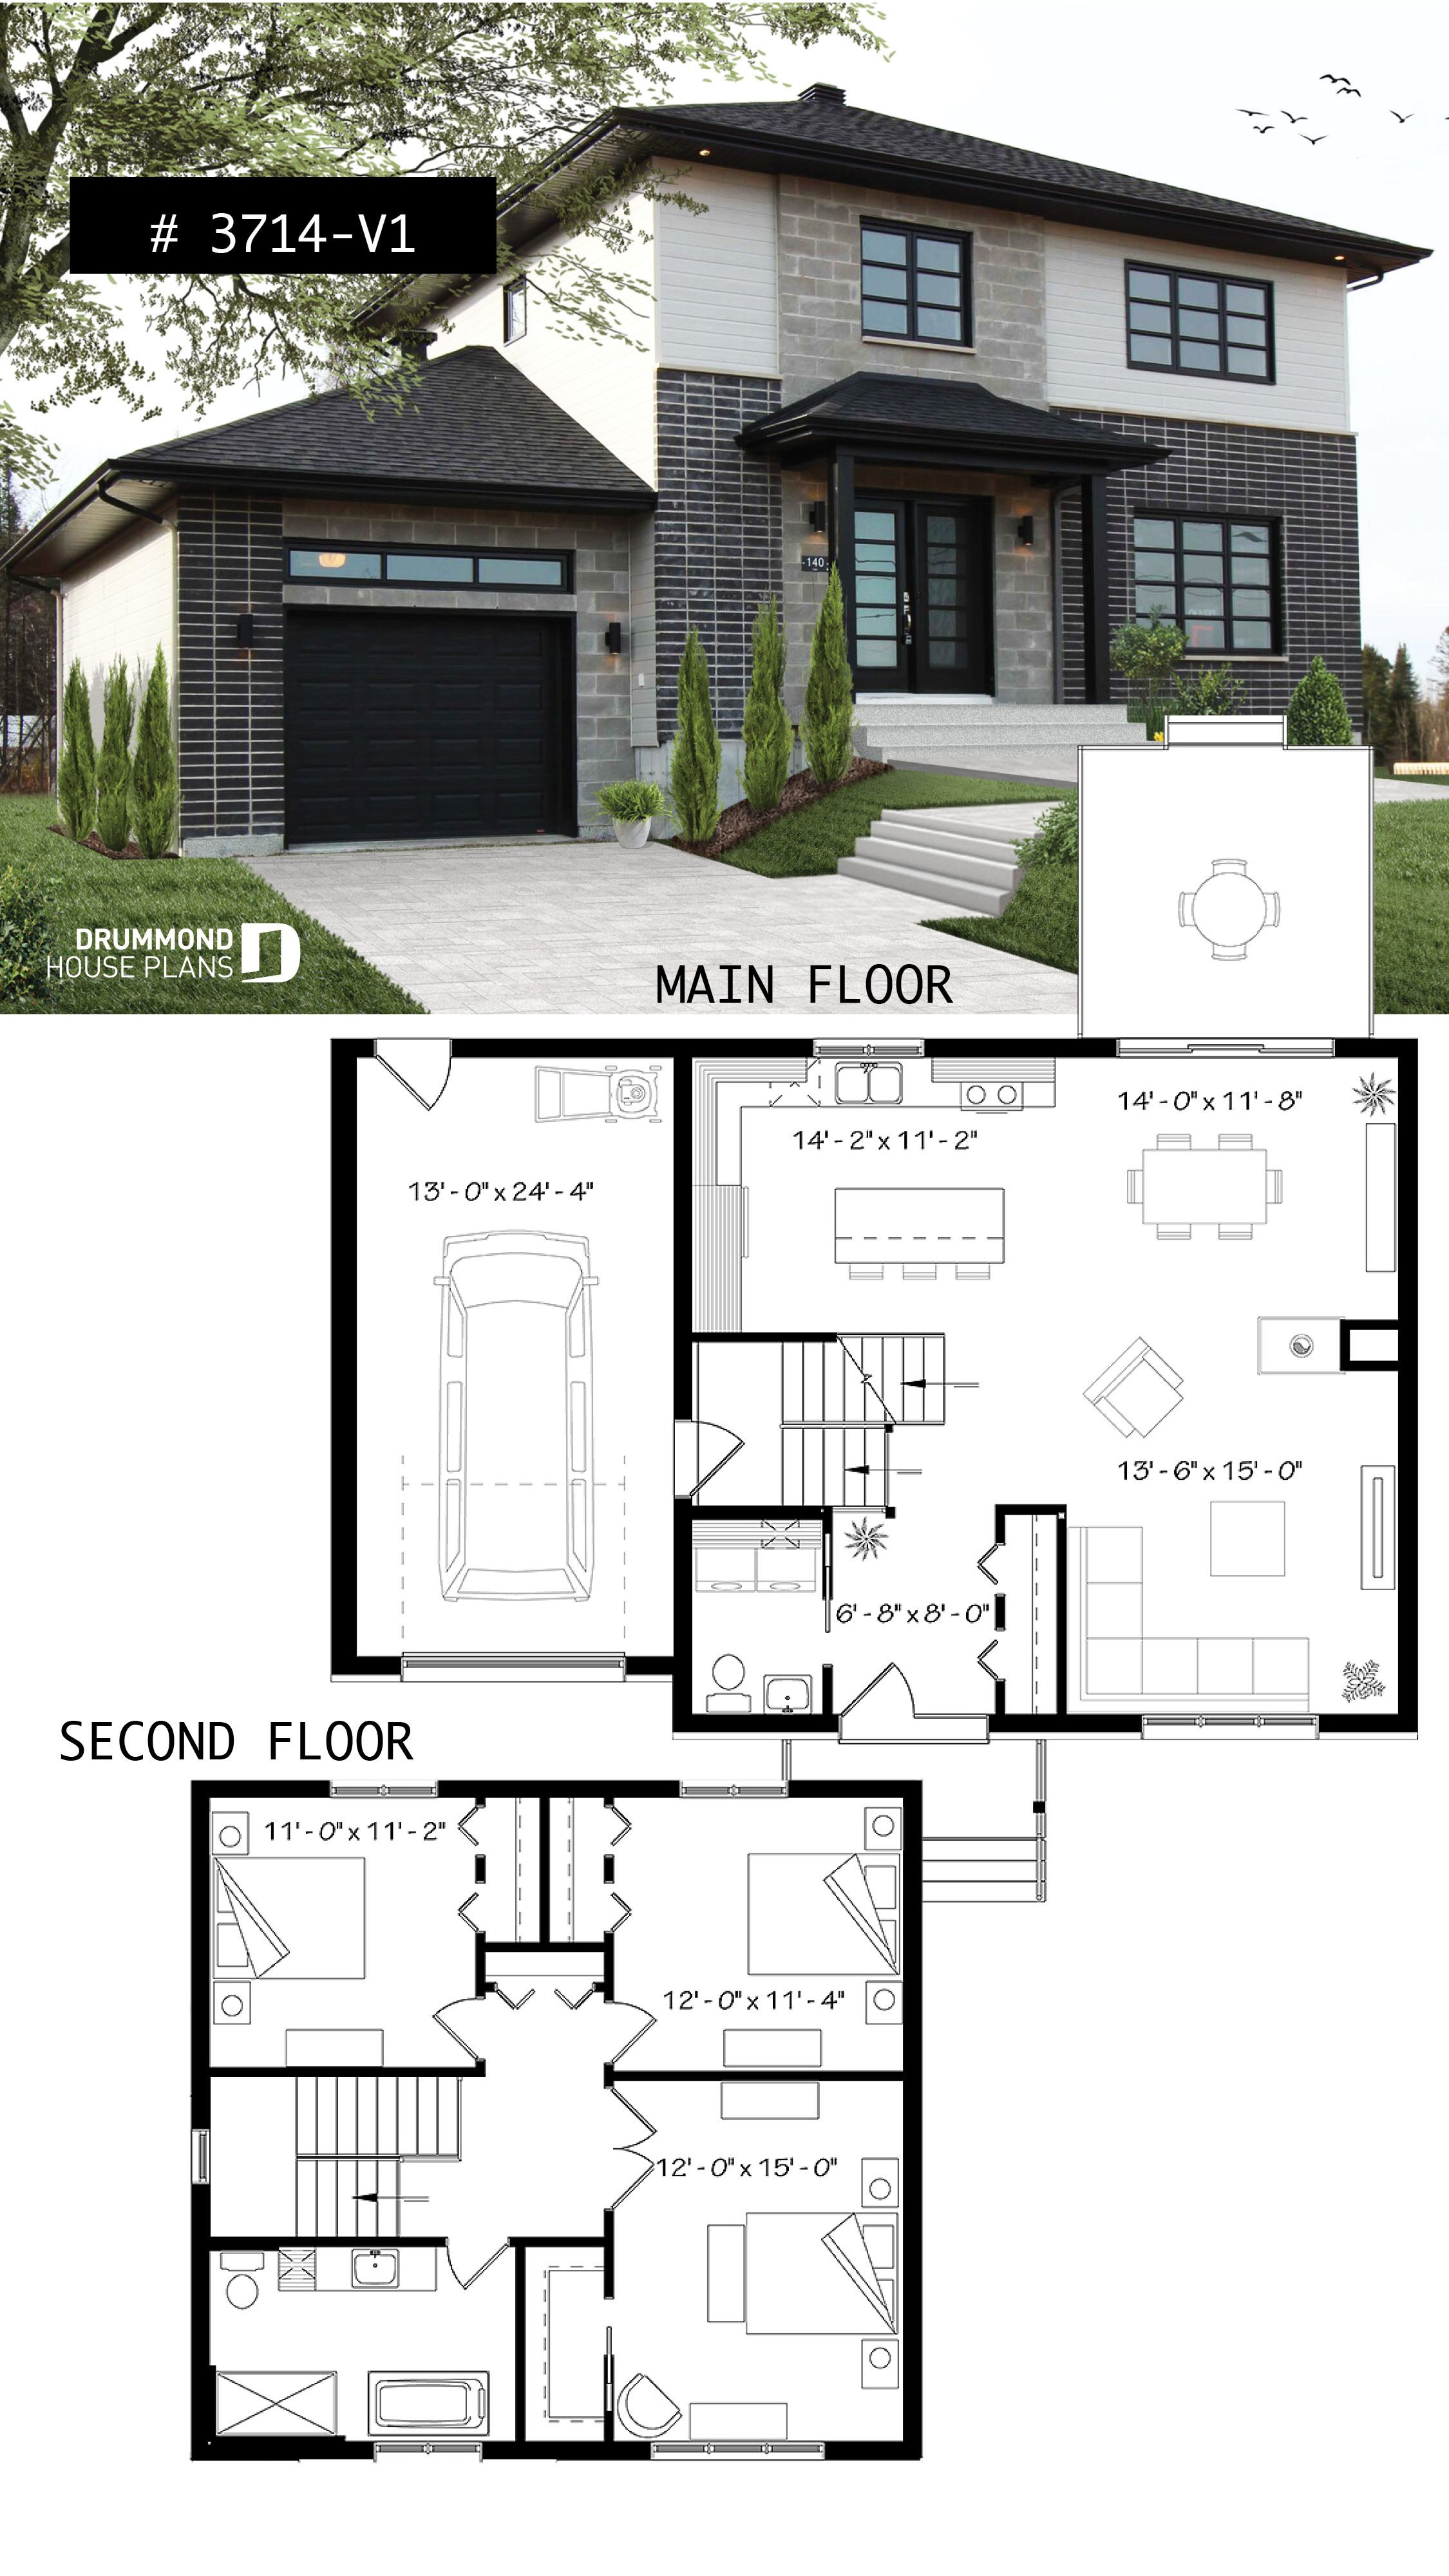 Modern Two Story House Plans Best Of House Plan Altair 2 No 3714 V1